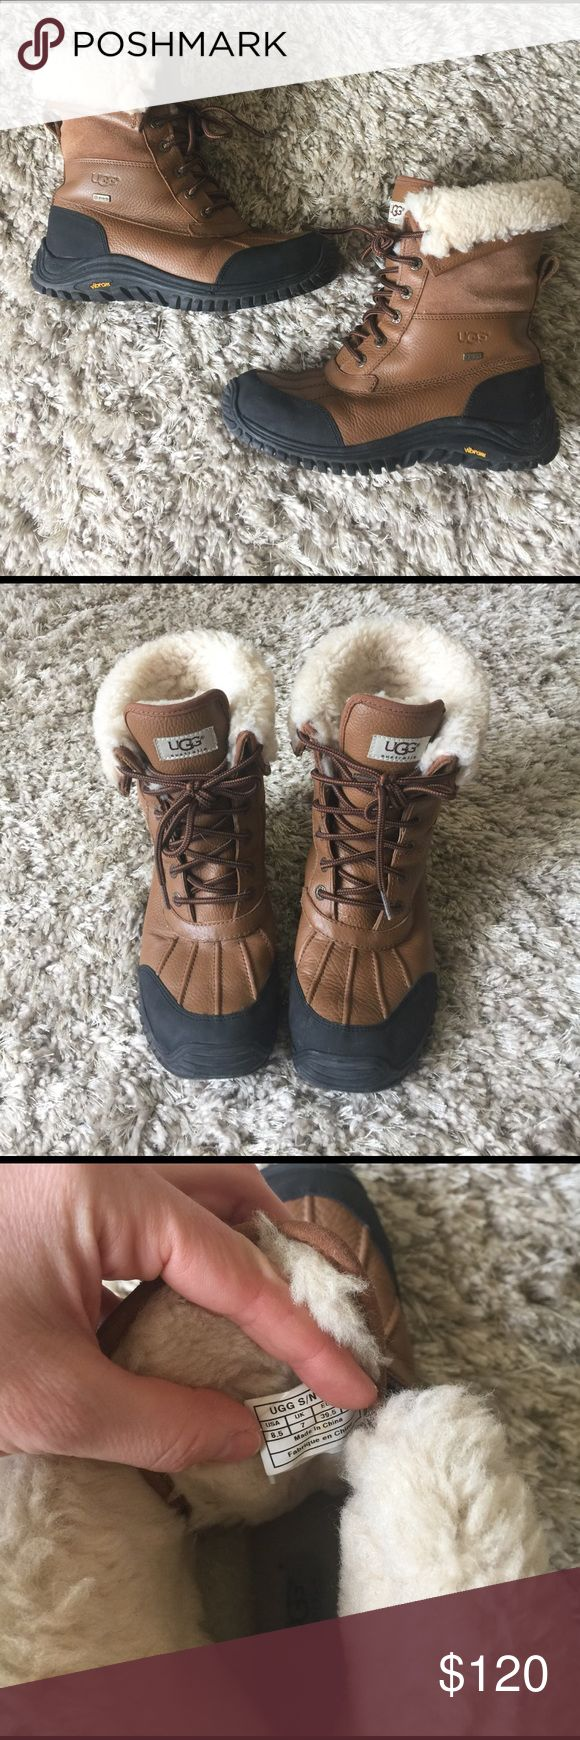 ugg boots Brown Ugg Adirondack Boots. Good used condition. Super warm!  Size 8.5 UGG Shoes Winter & Rain Boots